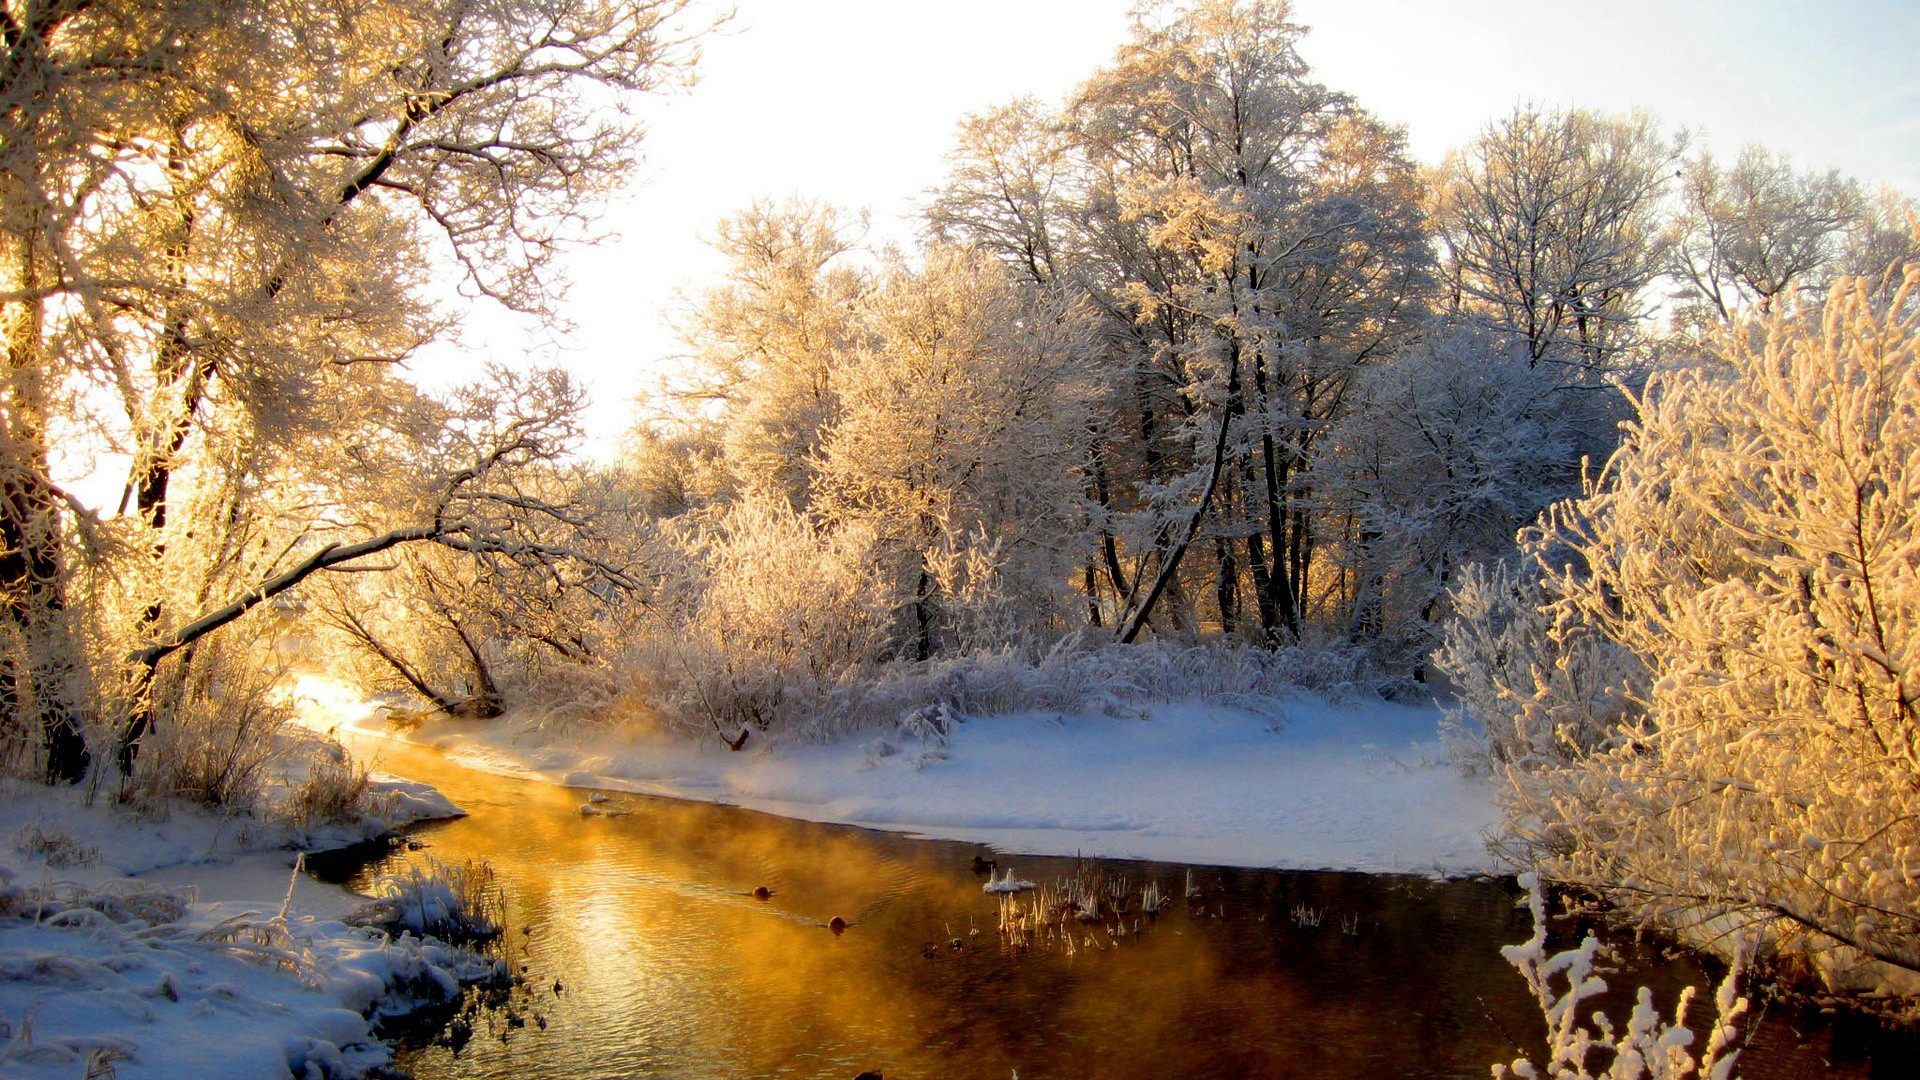 44417 download wallpaper Landscape, Winter, Nature, Snow screensavers and pictures for free